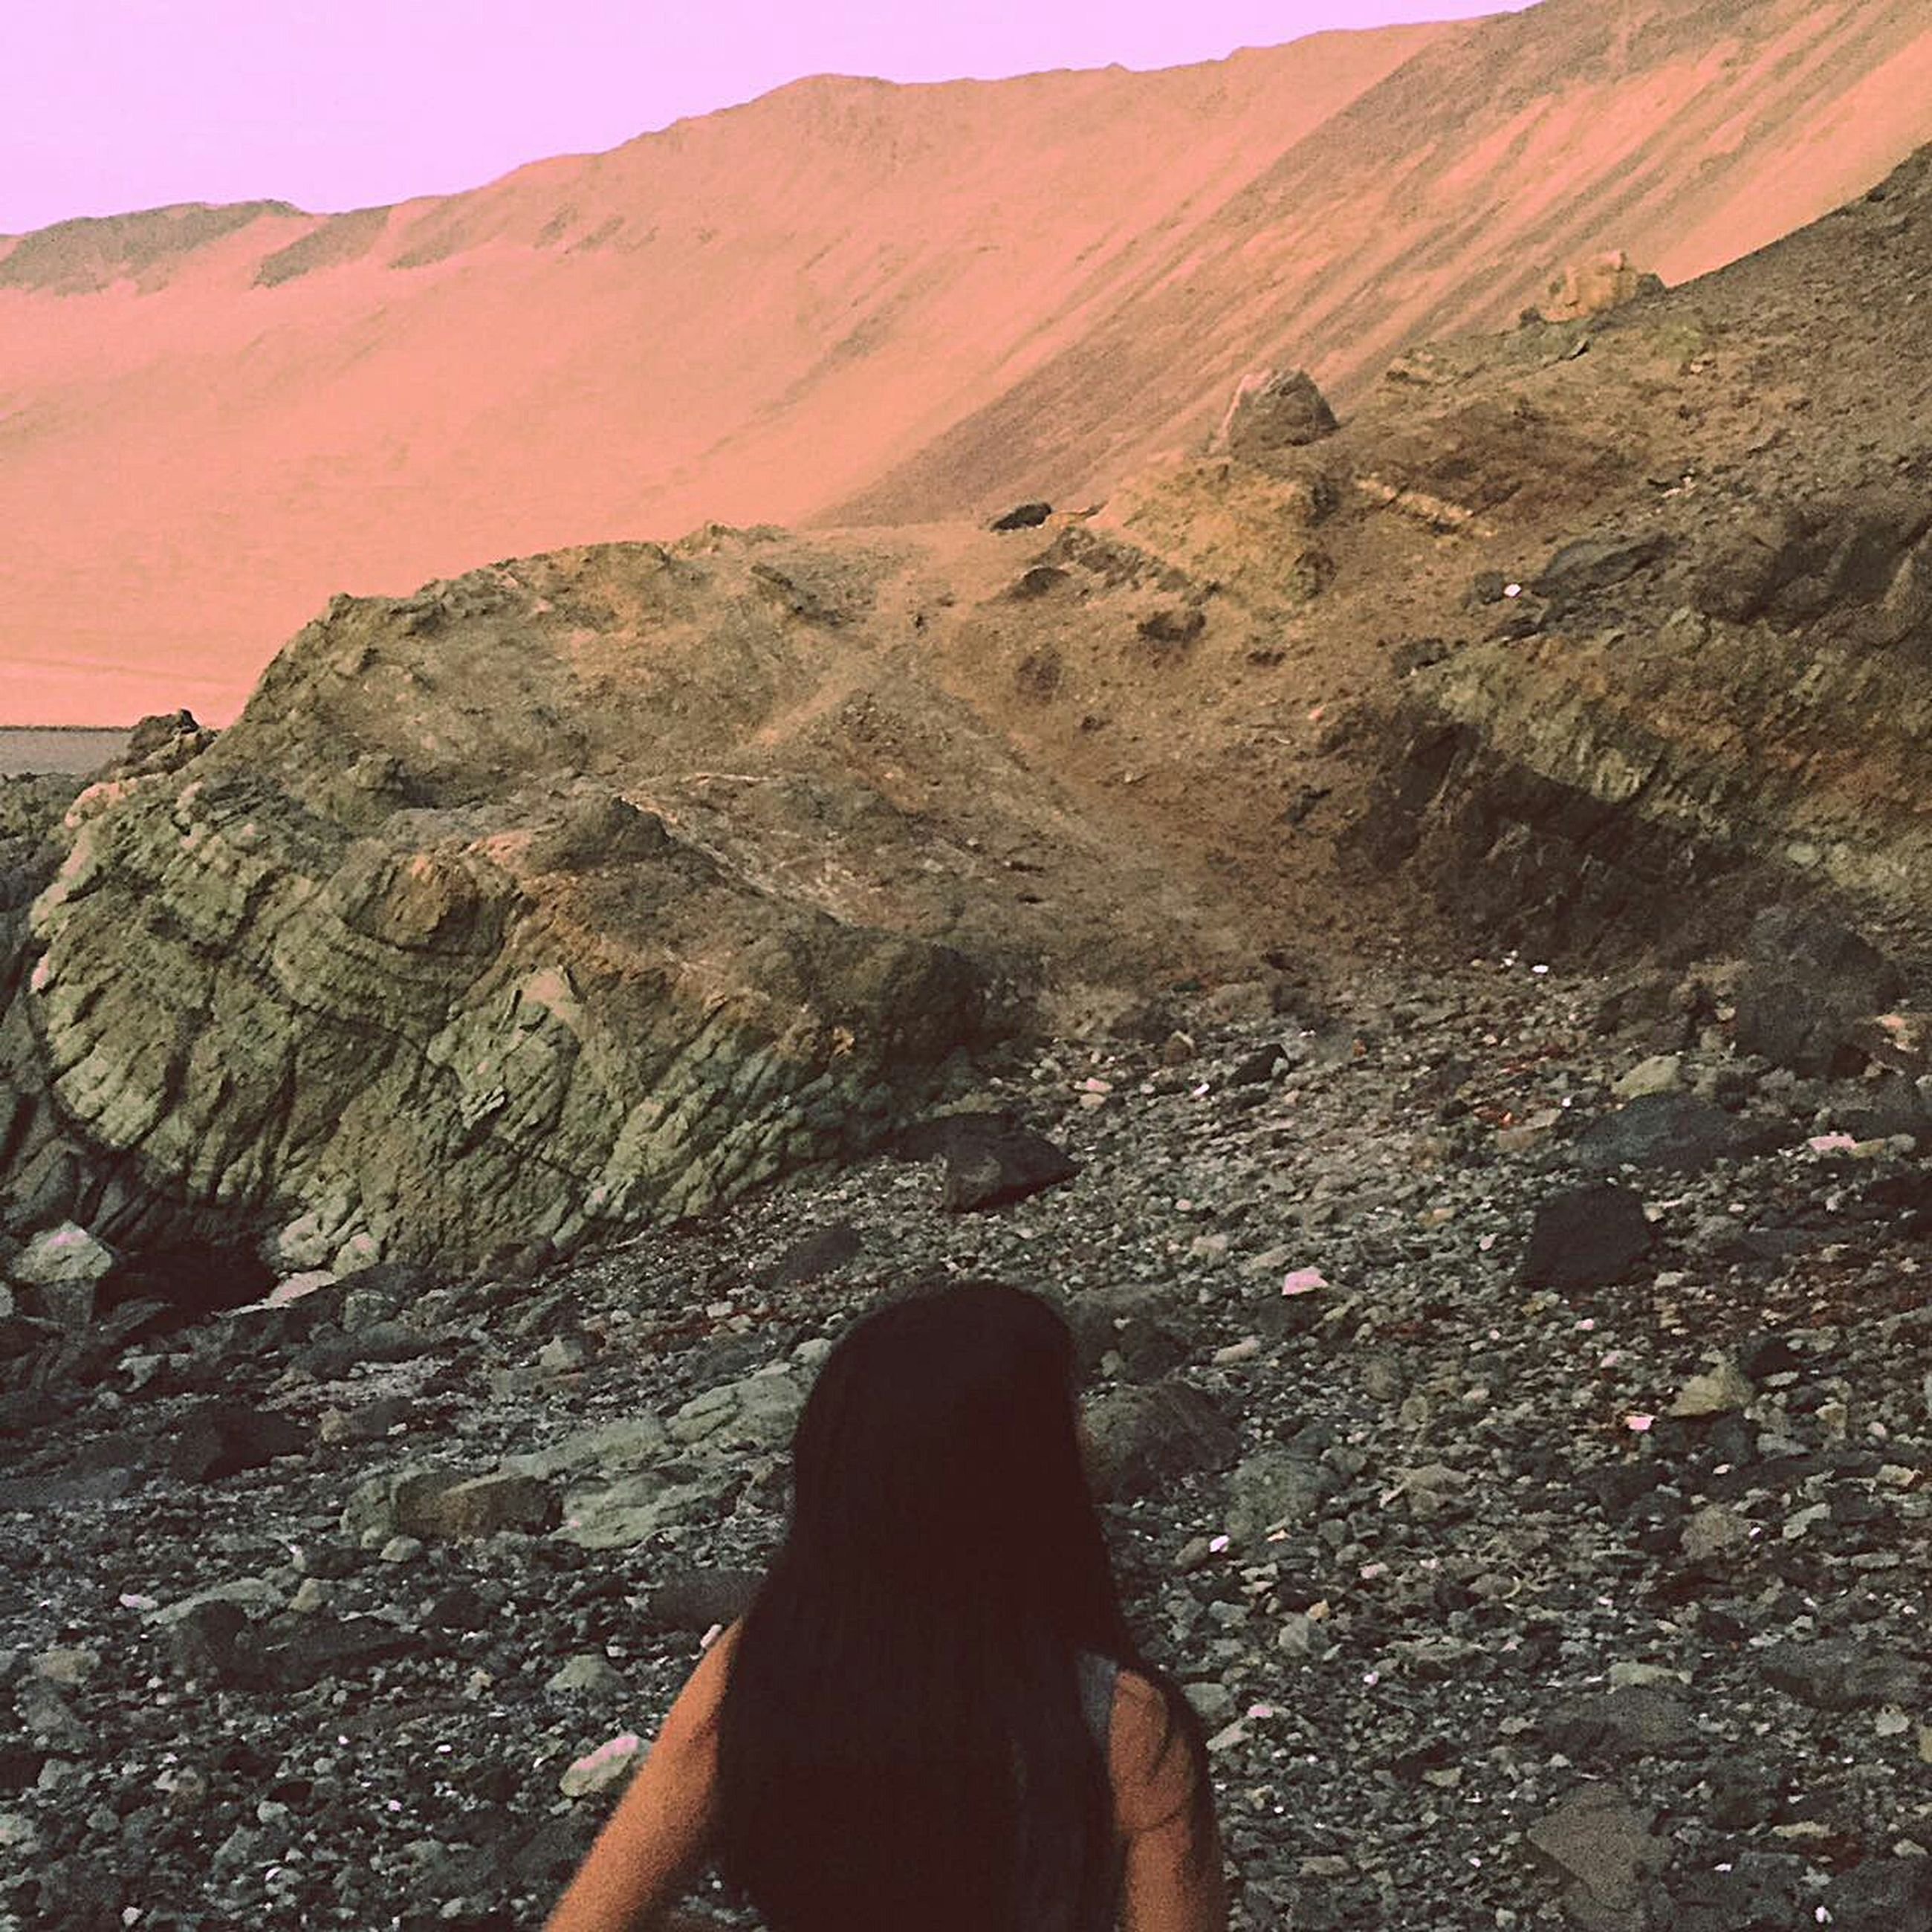 sand, nature, outdoors, sand dune, day, beauty in nature, one person, sky, people